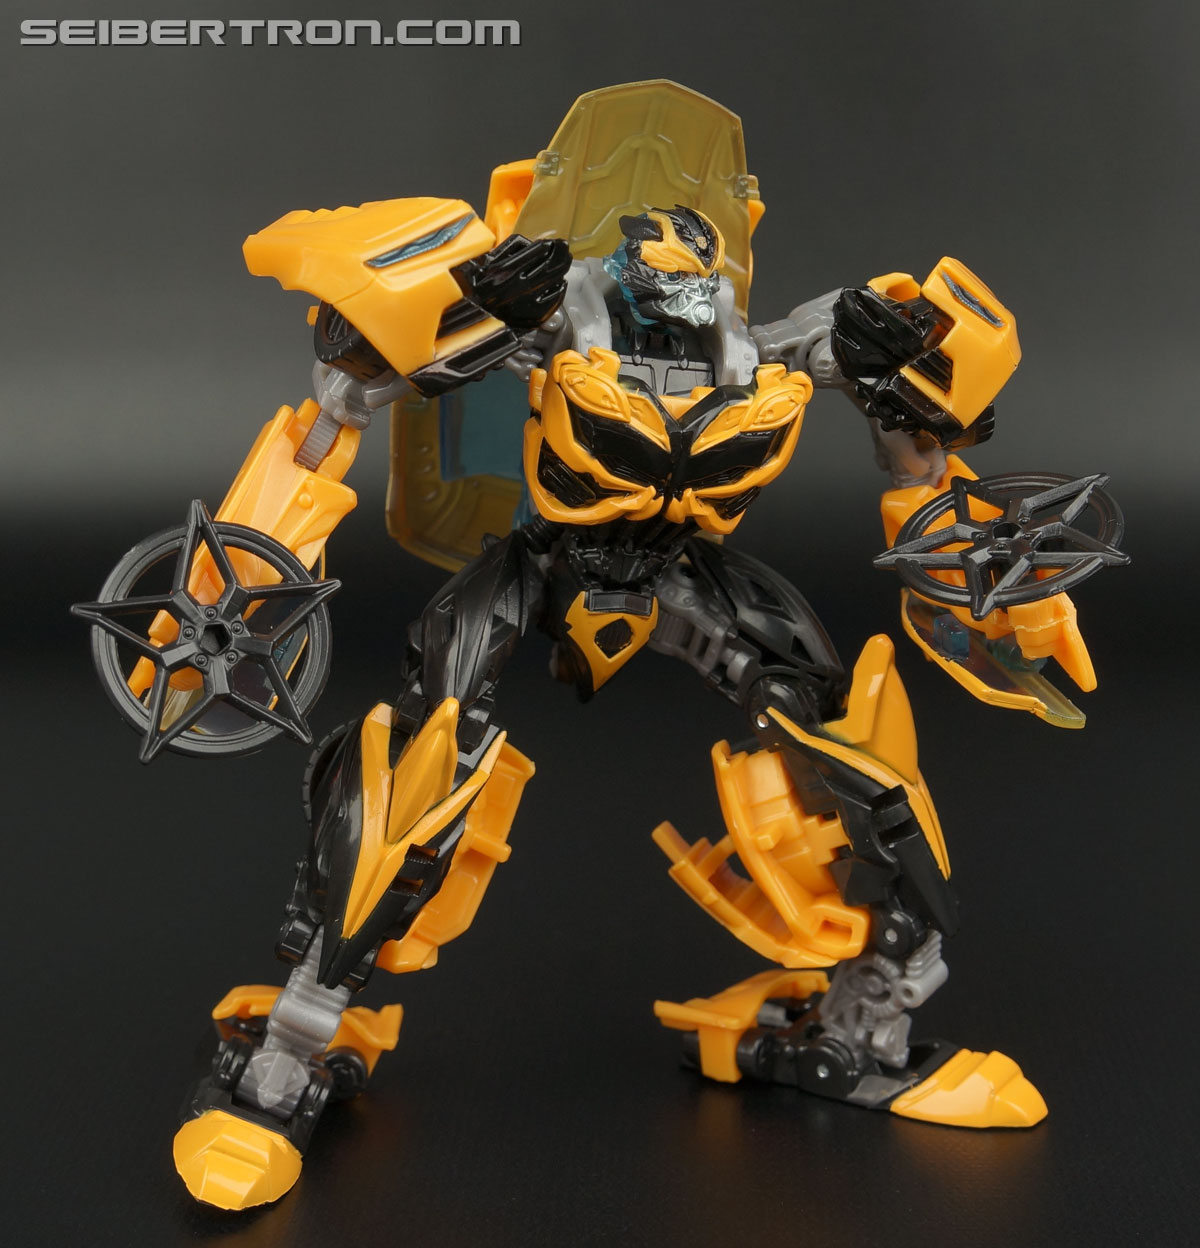 Transformers Age of Extinction: Generations Bumblebee (Image #124 of 190)